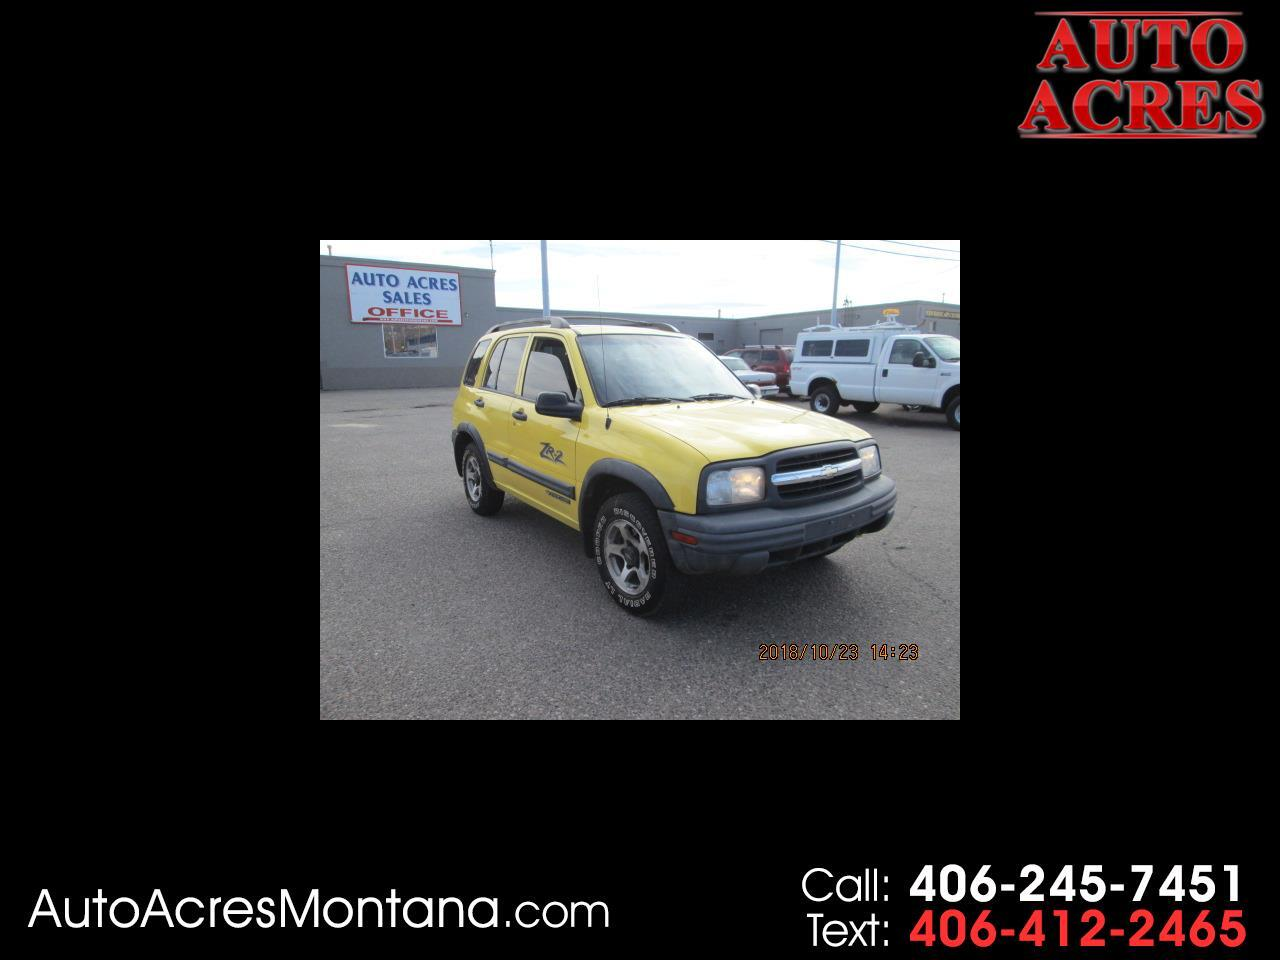 2002 Chevrolet Tracker 4dr Hardtop 4WD ZR2